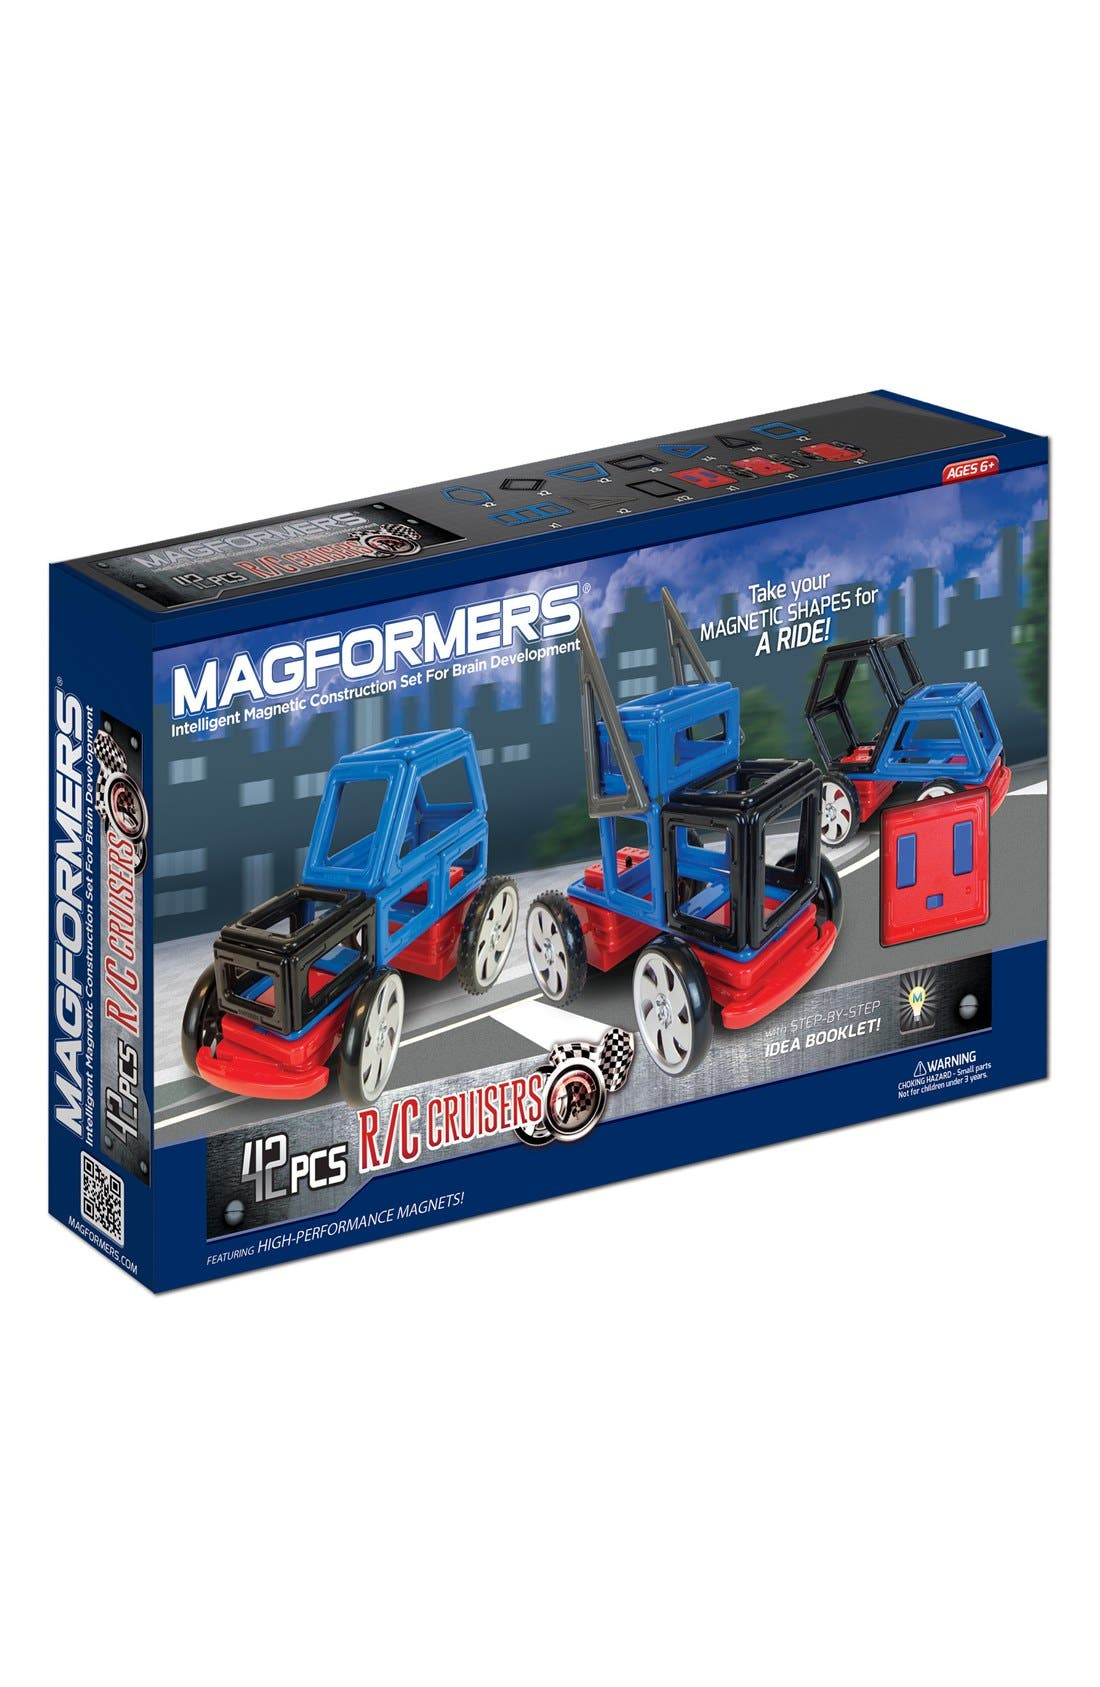 Alternate Image 1 Selected - Magformers 'R/C Cruiser' Magnetic Remote Control Vehicle Construction Kit